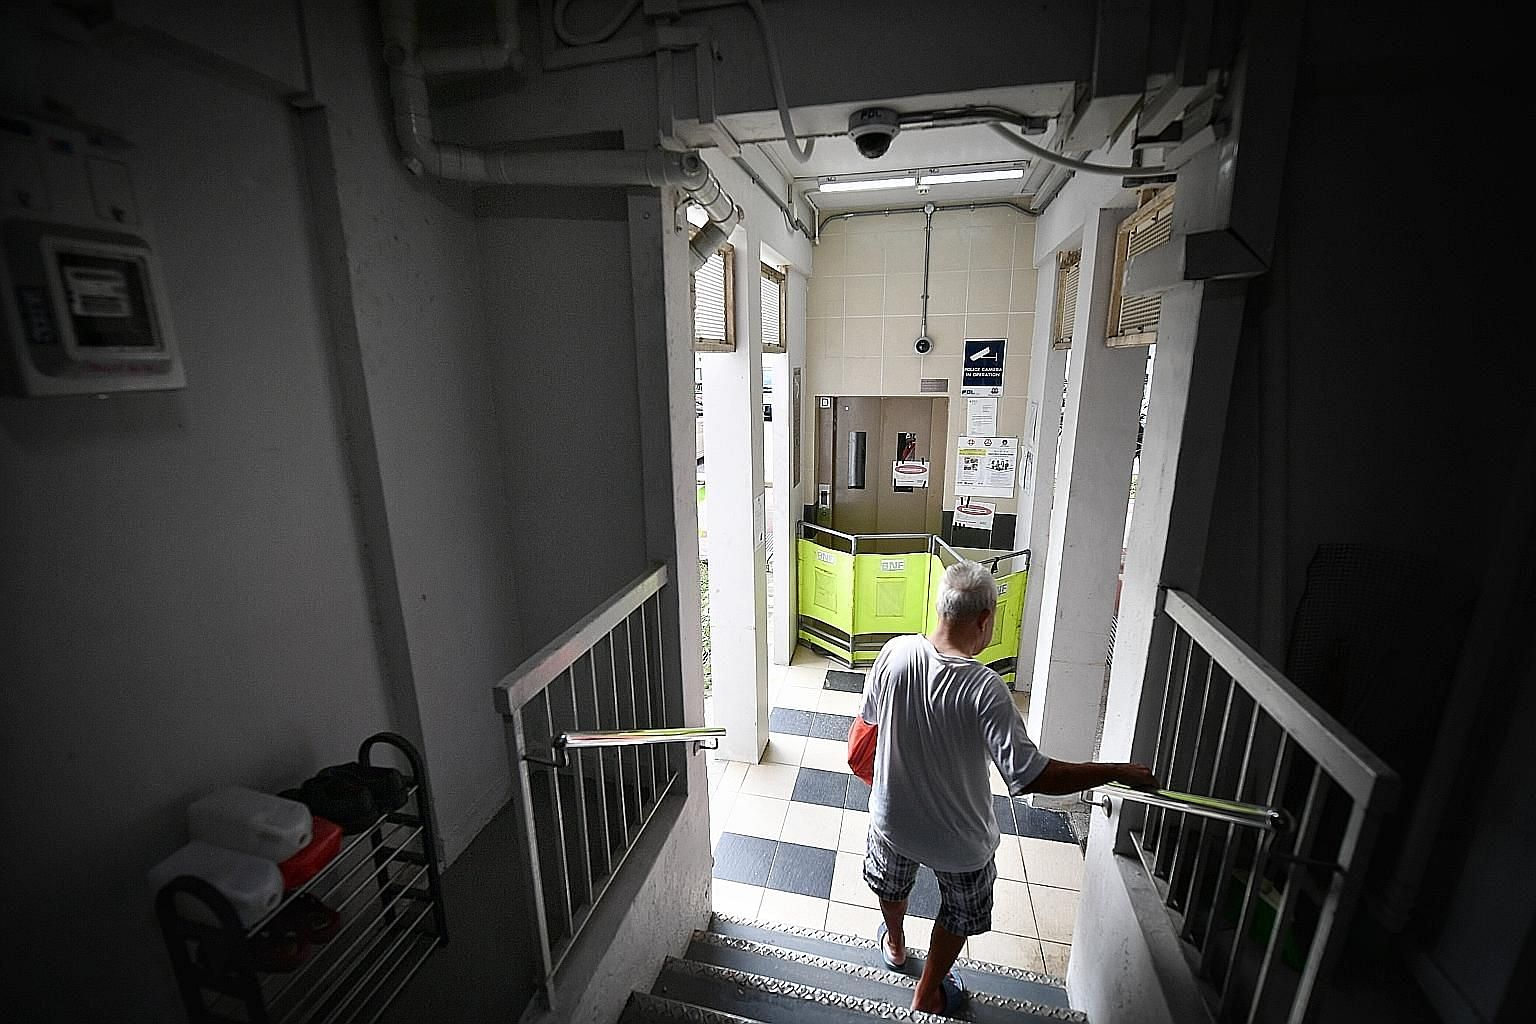 Residents are upset the lift is still out of order, given that the incident occurred on July 1, and that the lift was installed only five years ago. Six families in the four-storey block have had to bear with the hassle of climbing up and down stairs